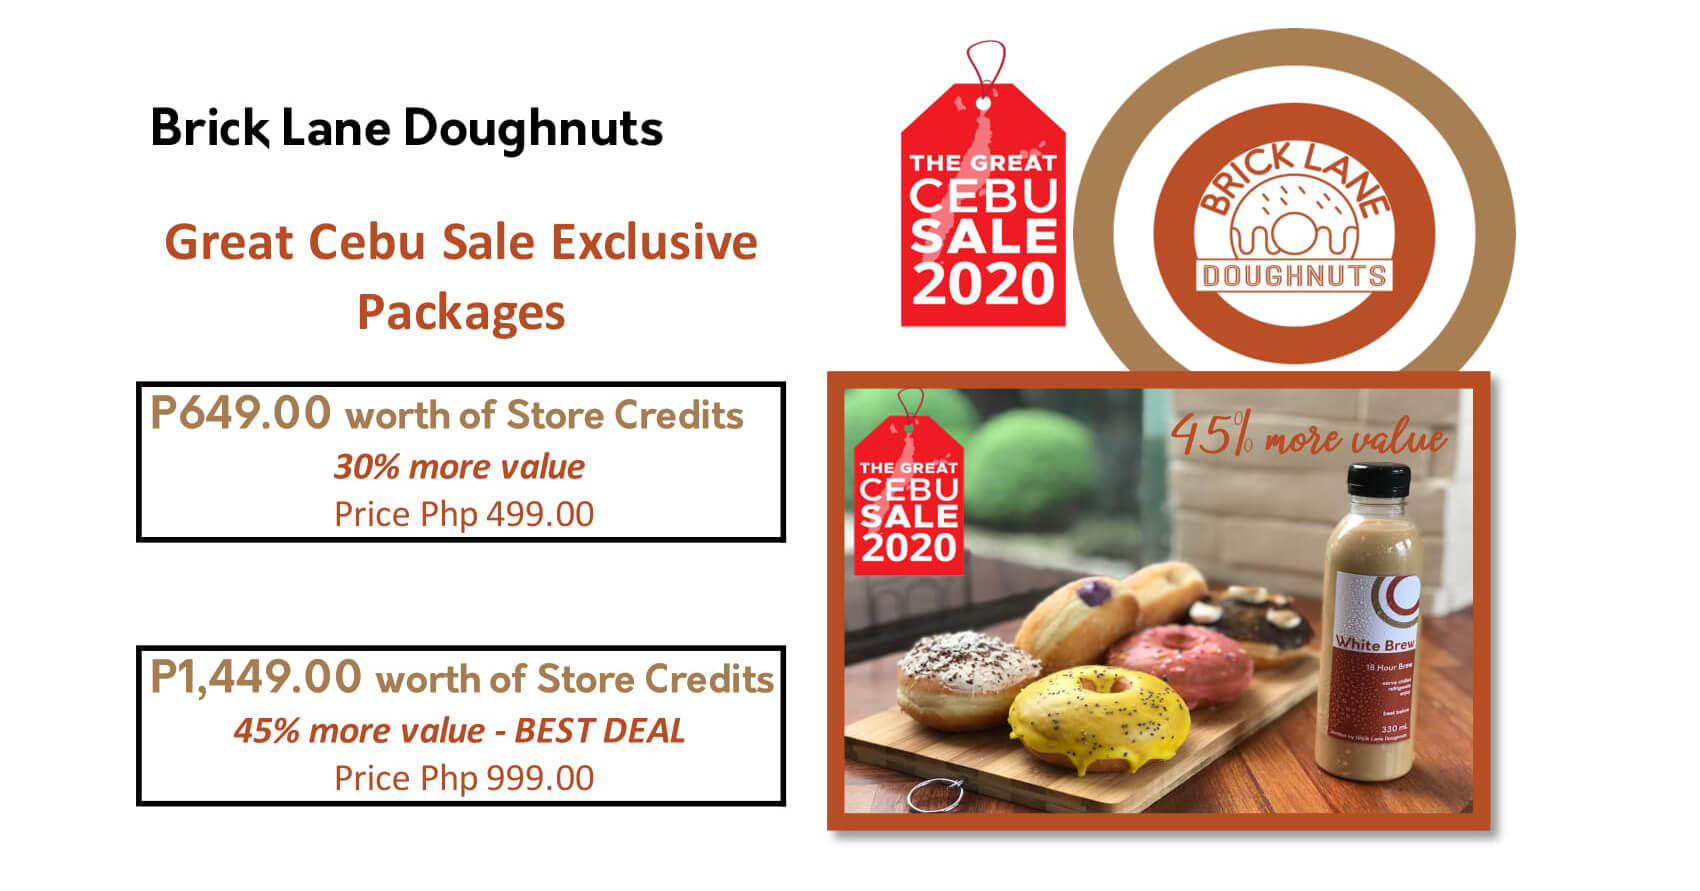 Brick Lane Doughnuts offers exclusive sale packages